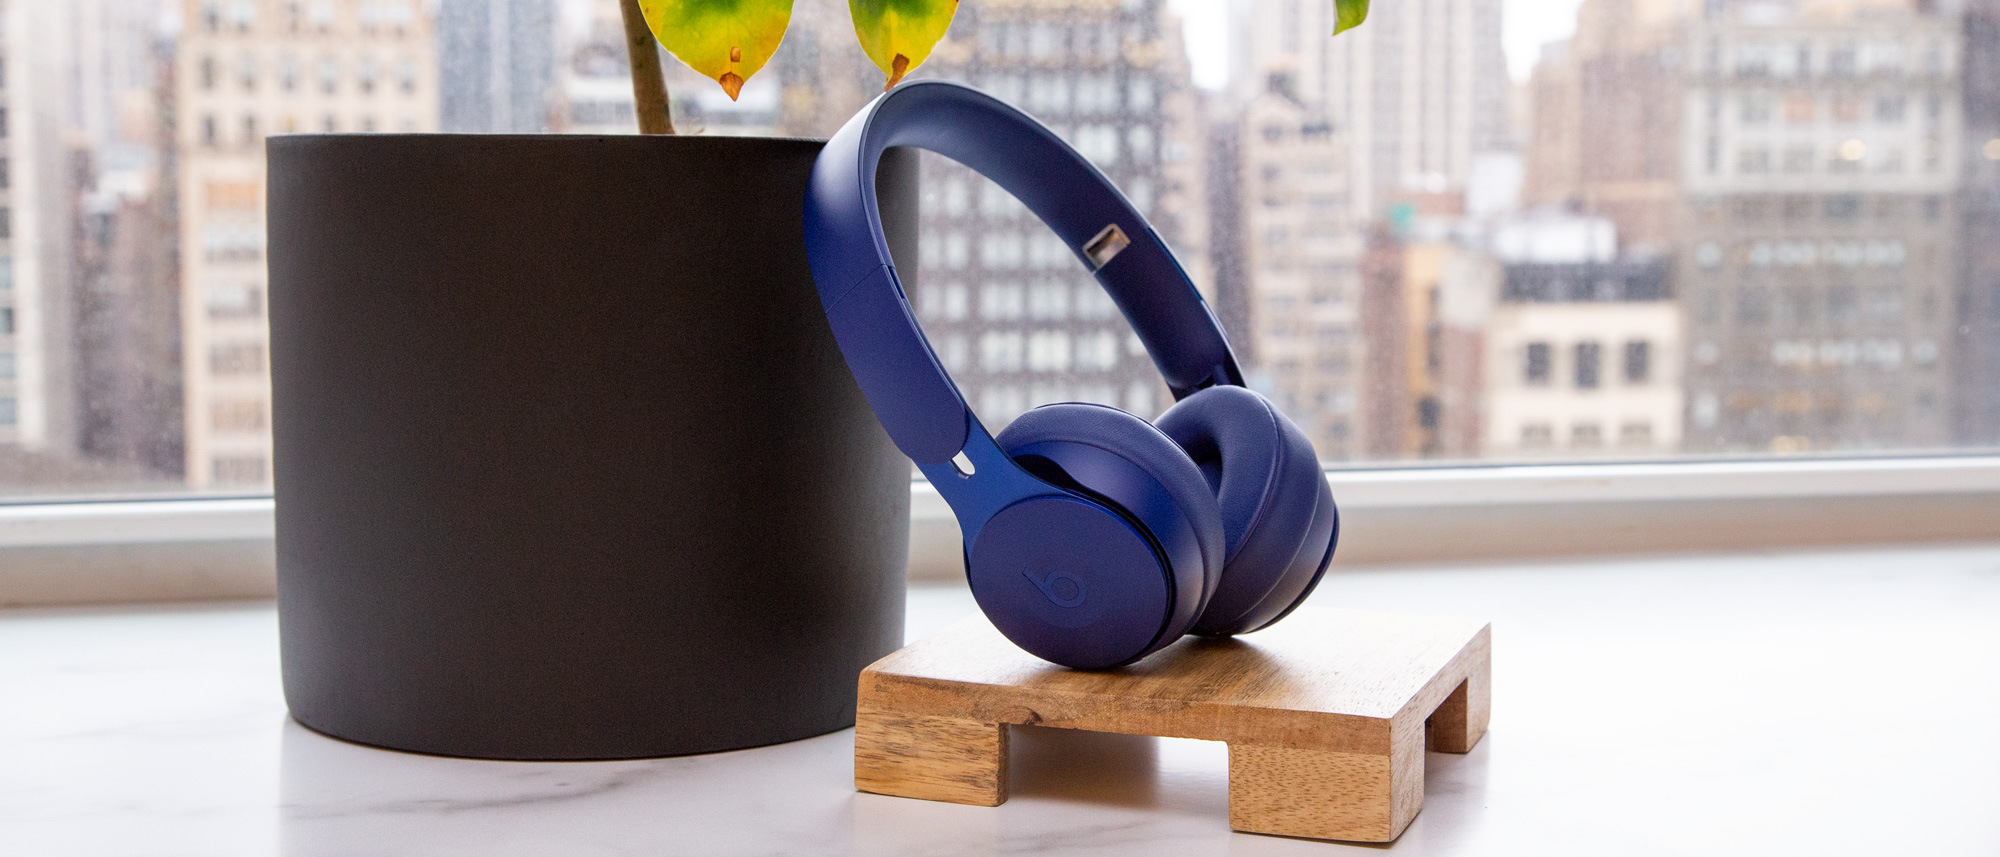 Beats Solo Pro On-Ear Headphones With Noise Cancellation Feature